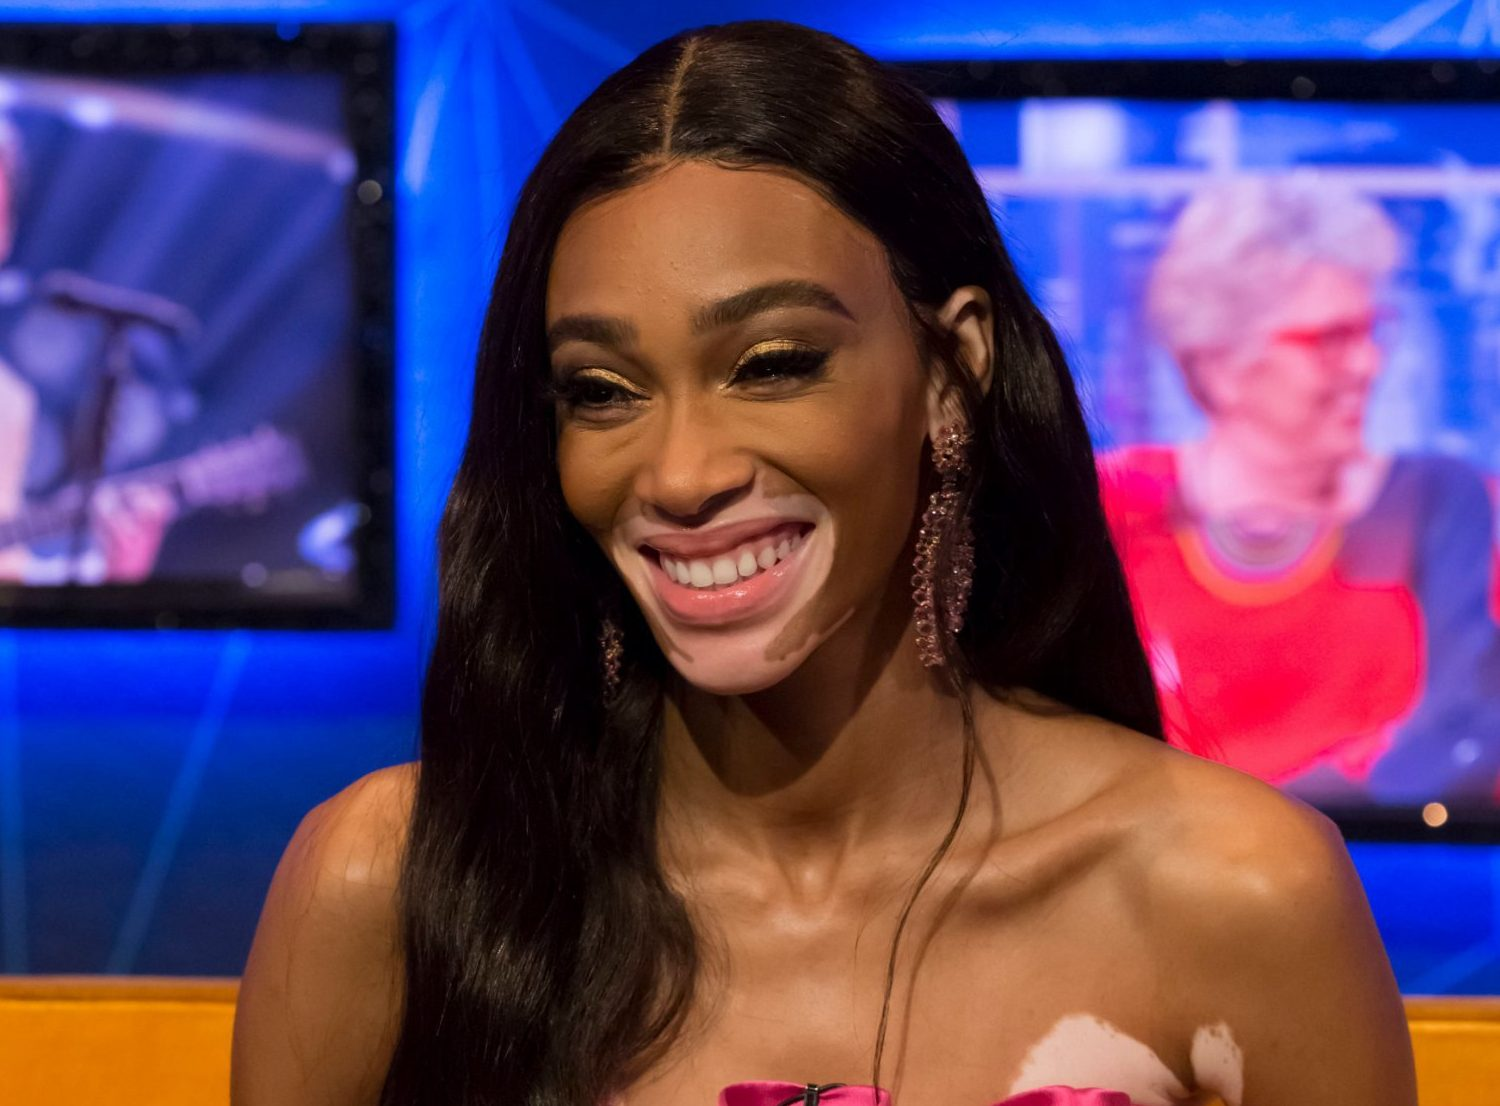 Winnie Harlow wants you to know she's not 'suffering' from vitiligo